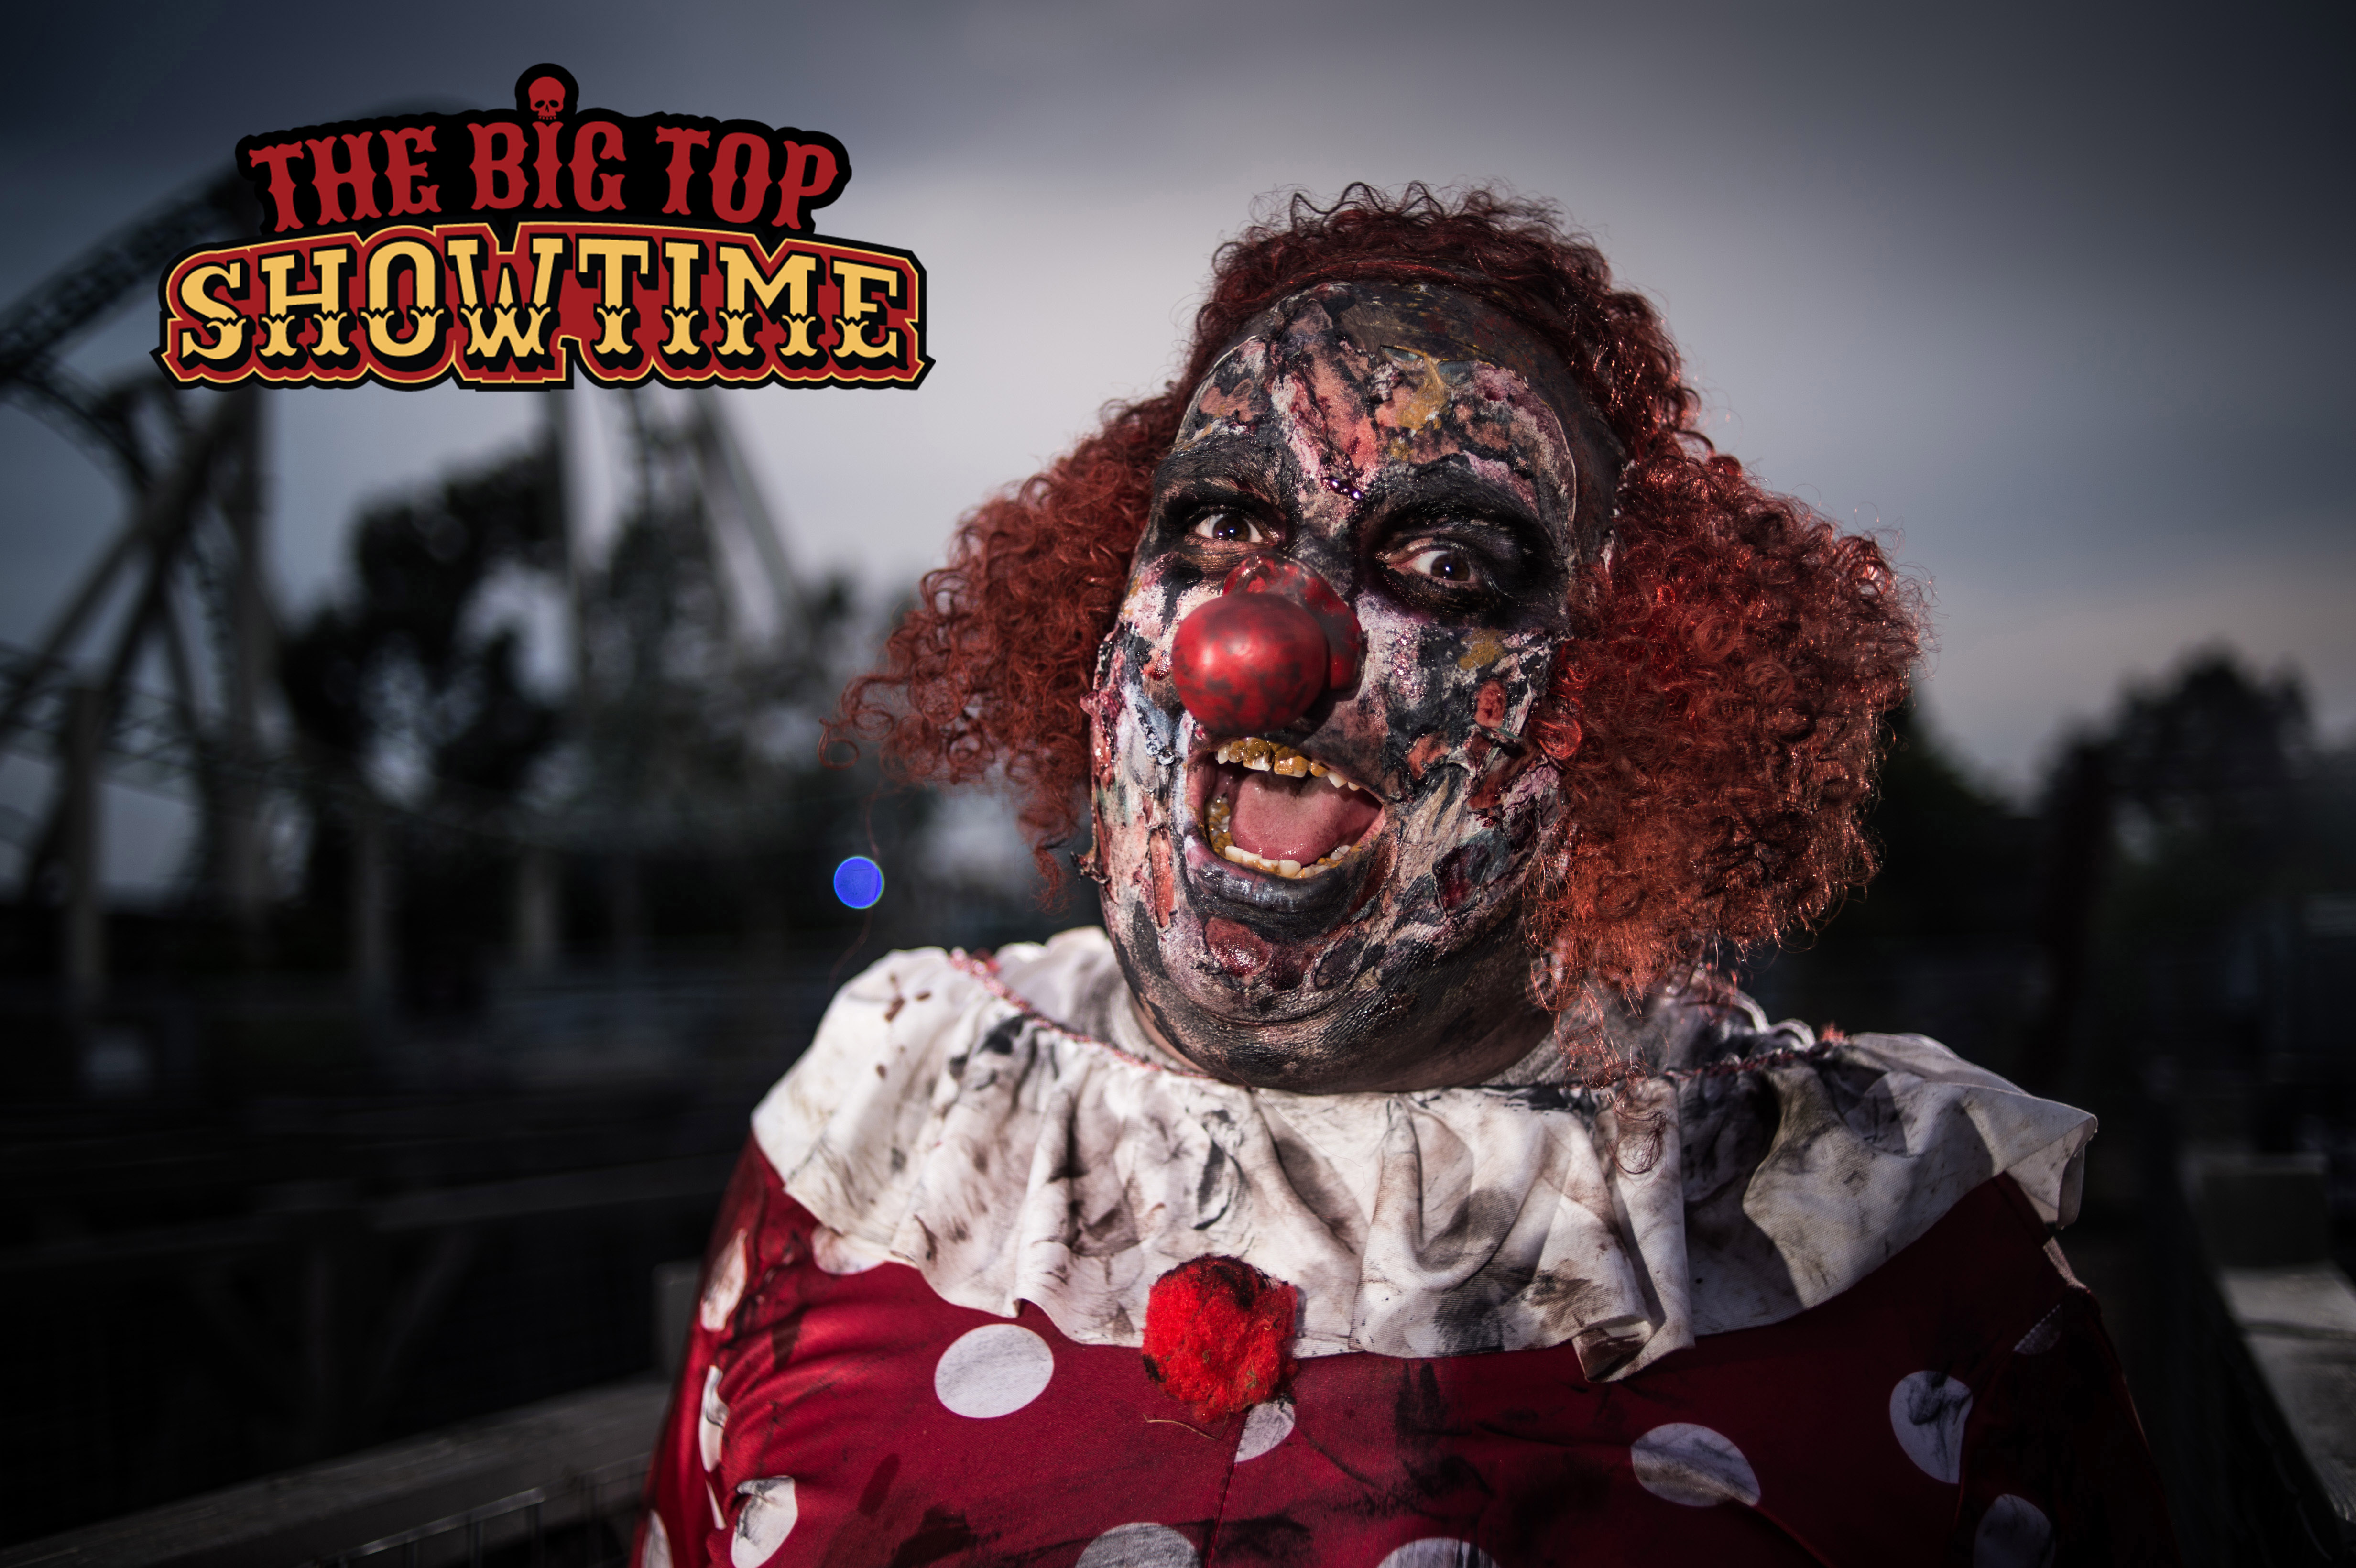 Big Top Showtime is coming to Thorpe Park Fright Nights 2018